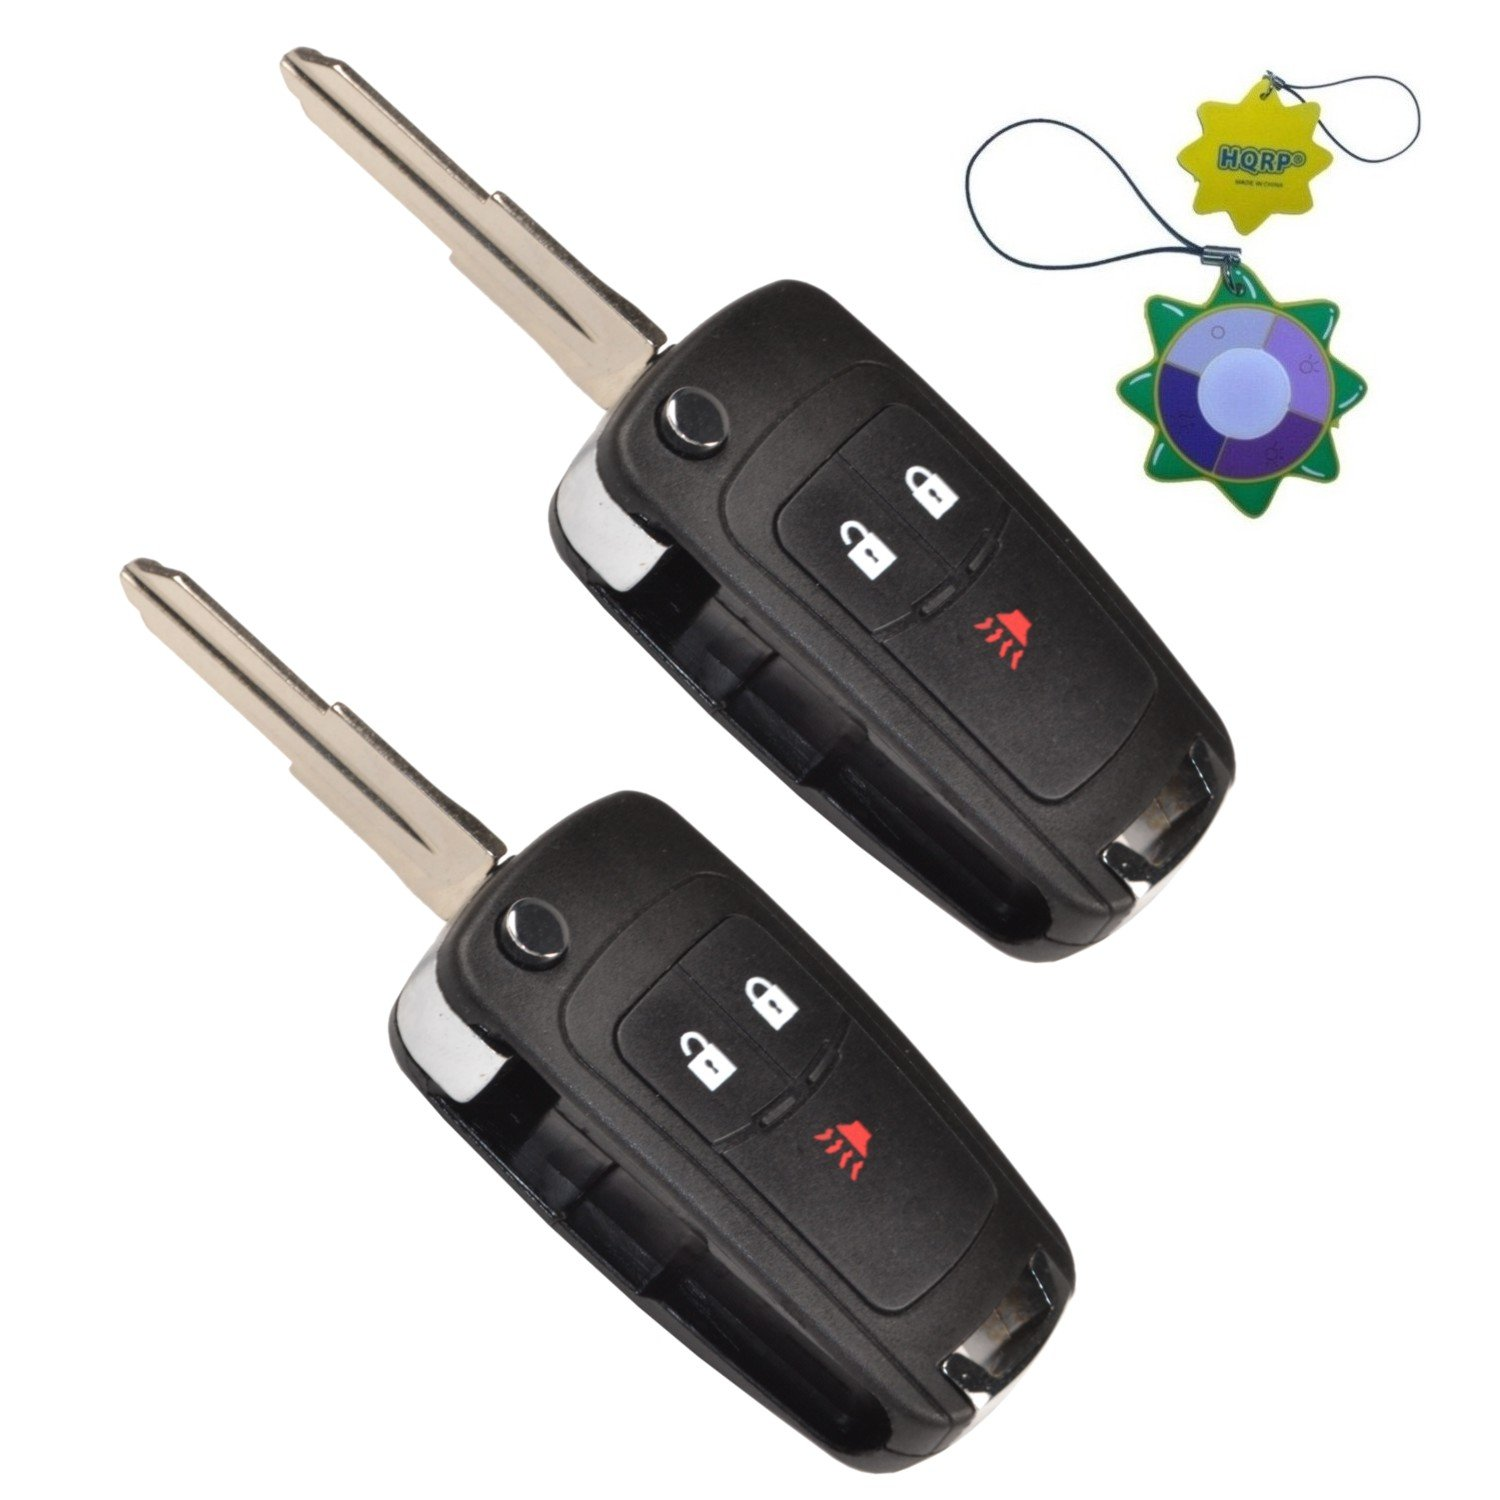 HQRP 2-Pack Remote Flip Folding Key Fob Shell Case Keyless Entry w/ 3 Buttons for Chevrolet Spark 2012 2013 2014 2015 2016 plus HQRP UV Meter